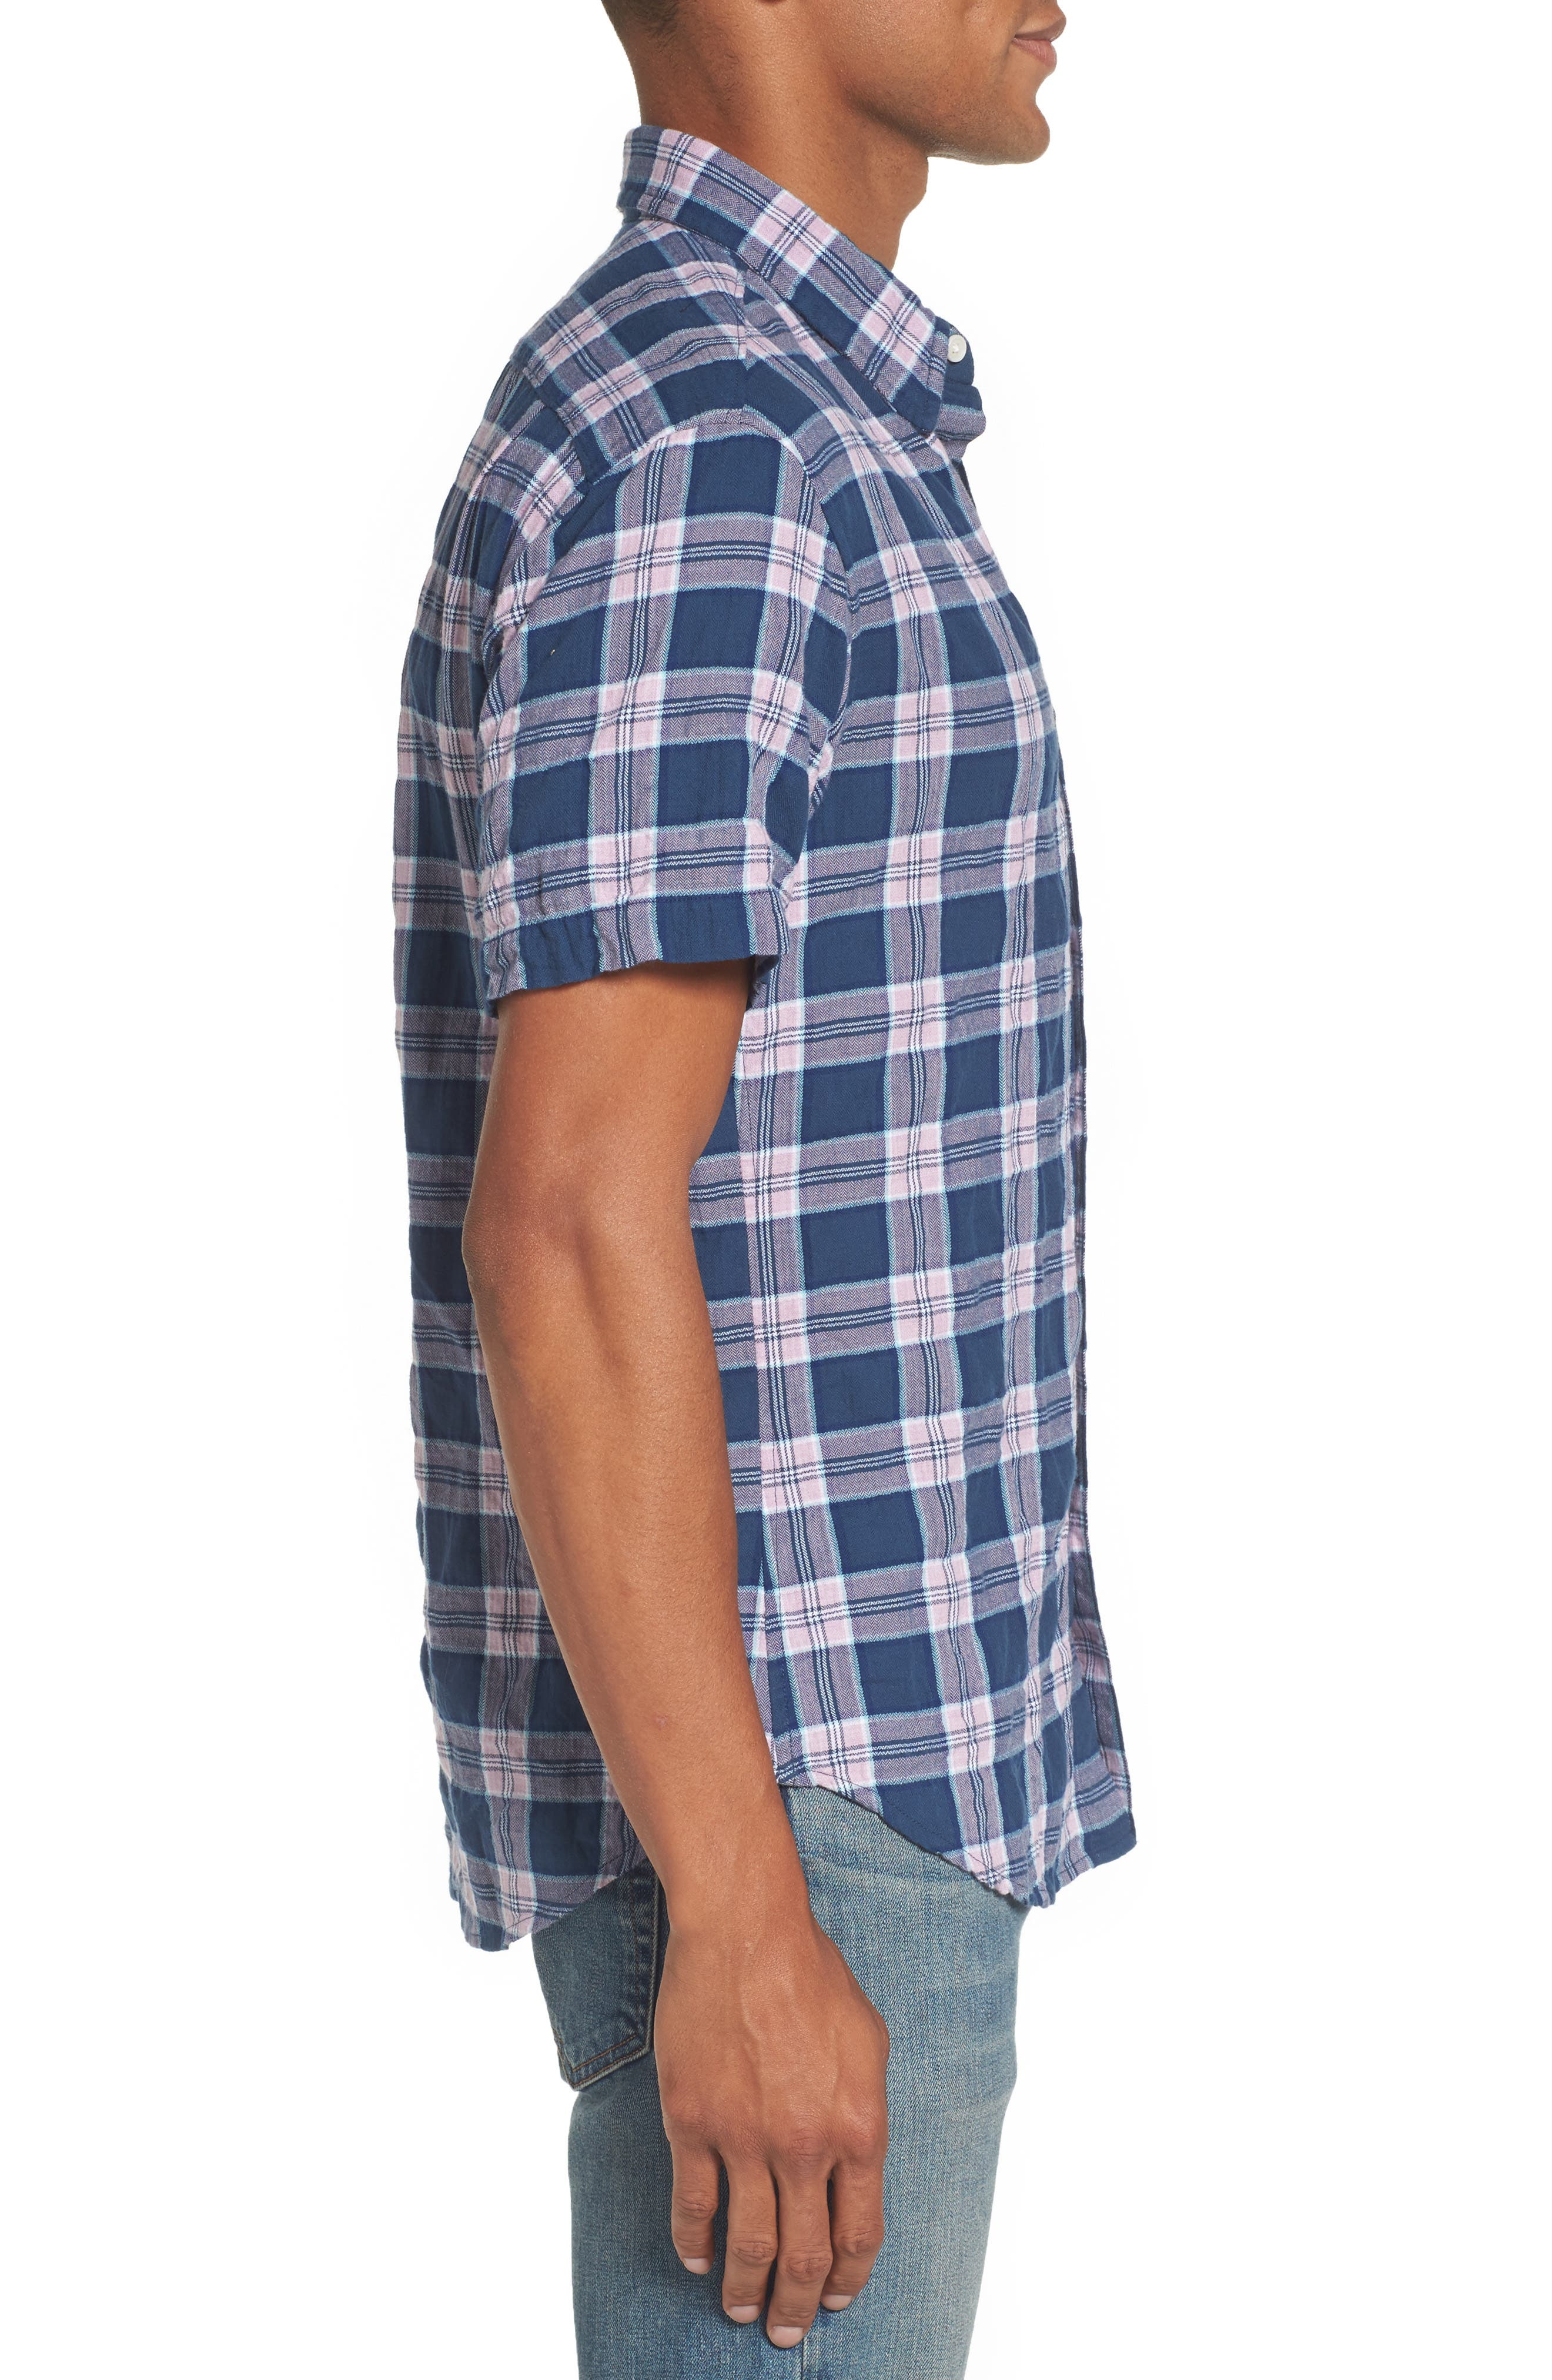 Riviera Slim Fit Plaid Woven Shirt,                             Alternate thumbnail 3, color,                             Crinkle Blue Pine Plaid